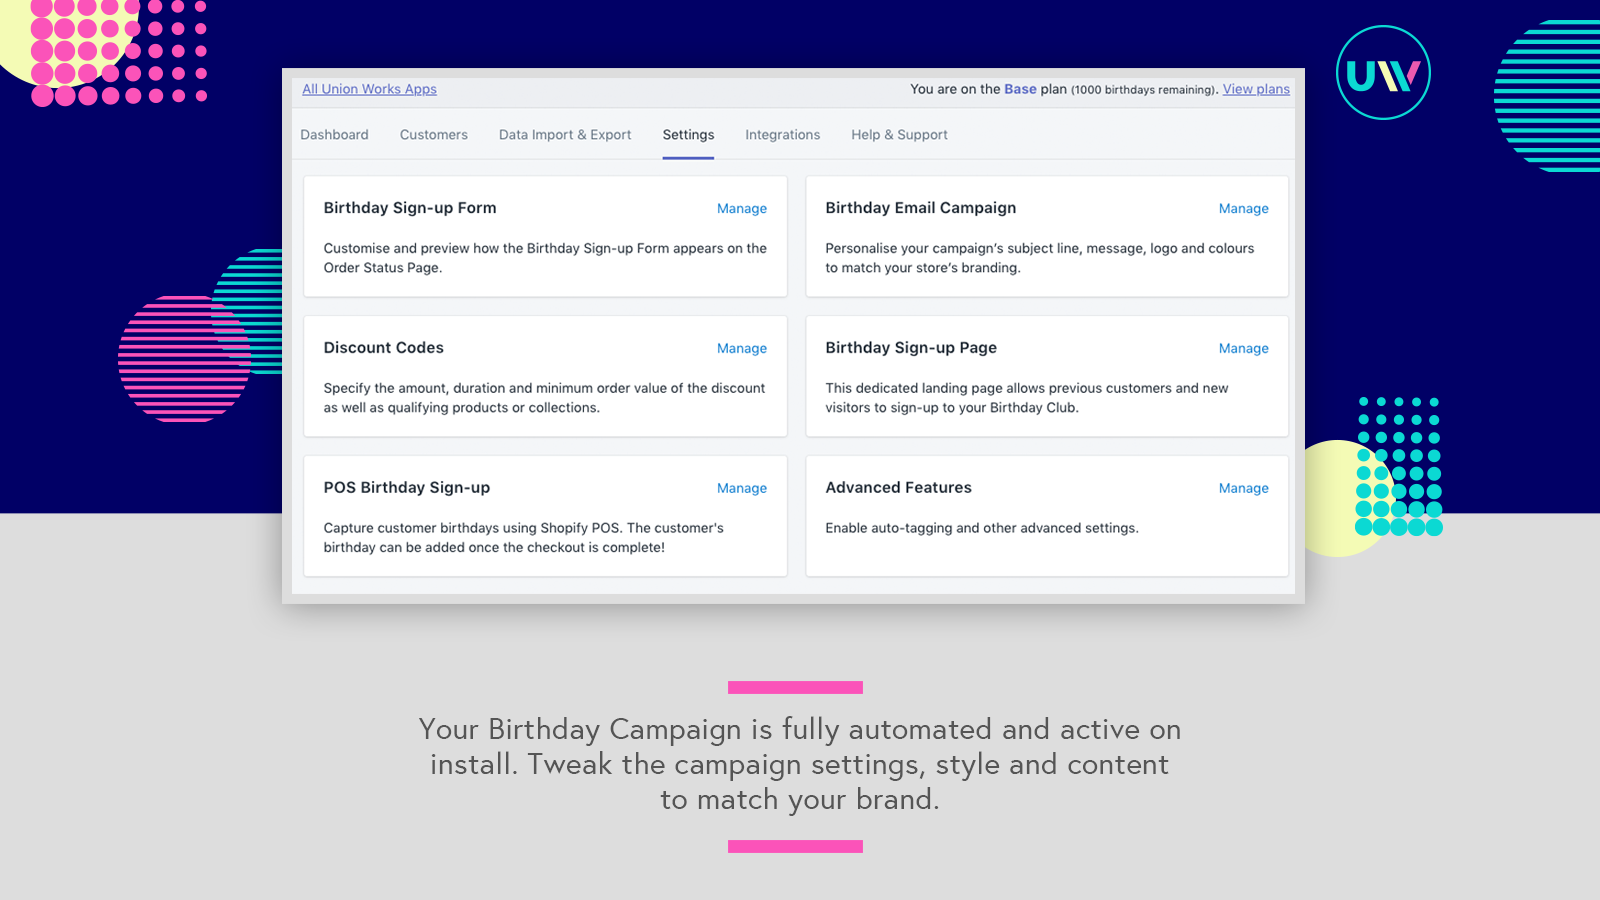 customise your campaign